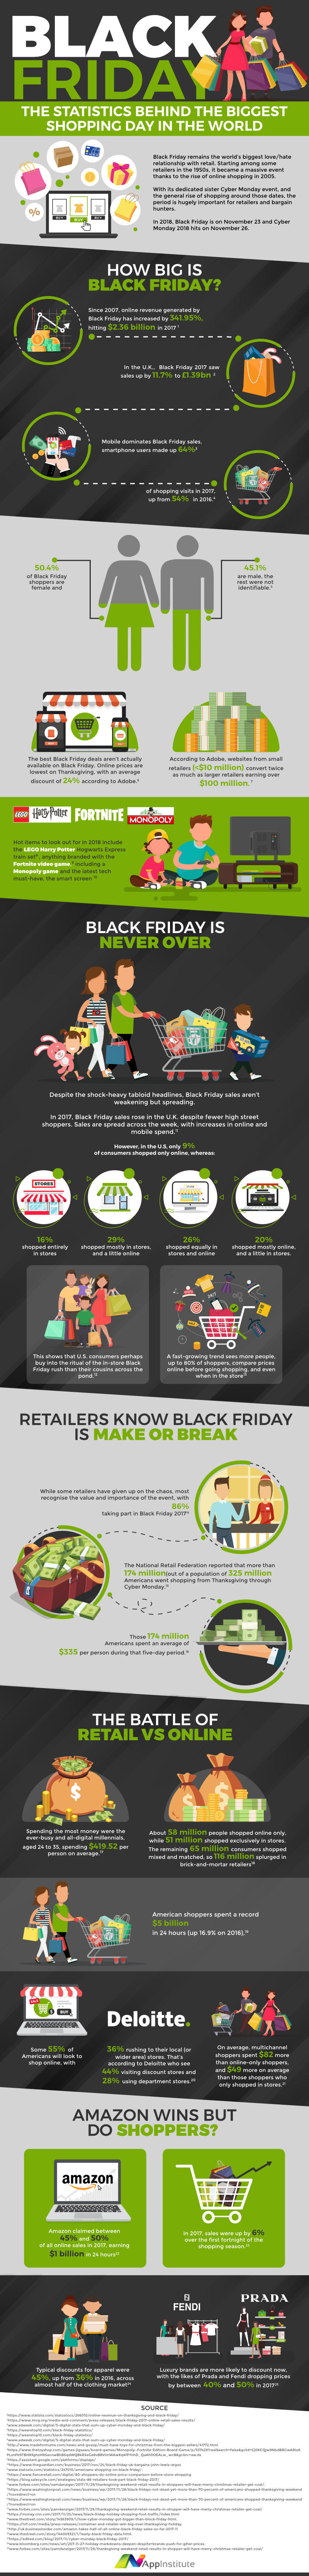 Black Friday by the Numbers